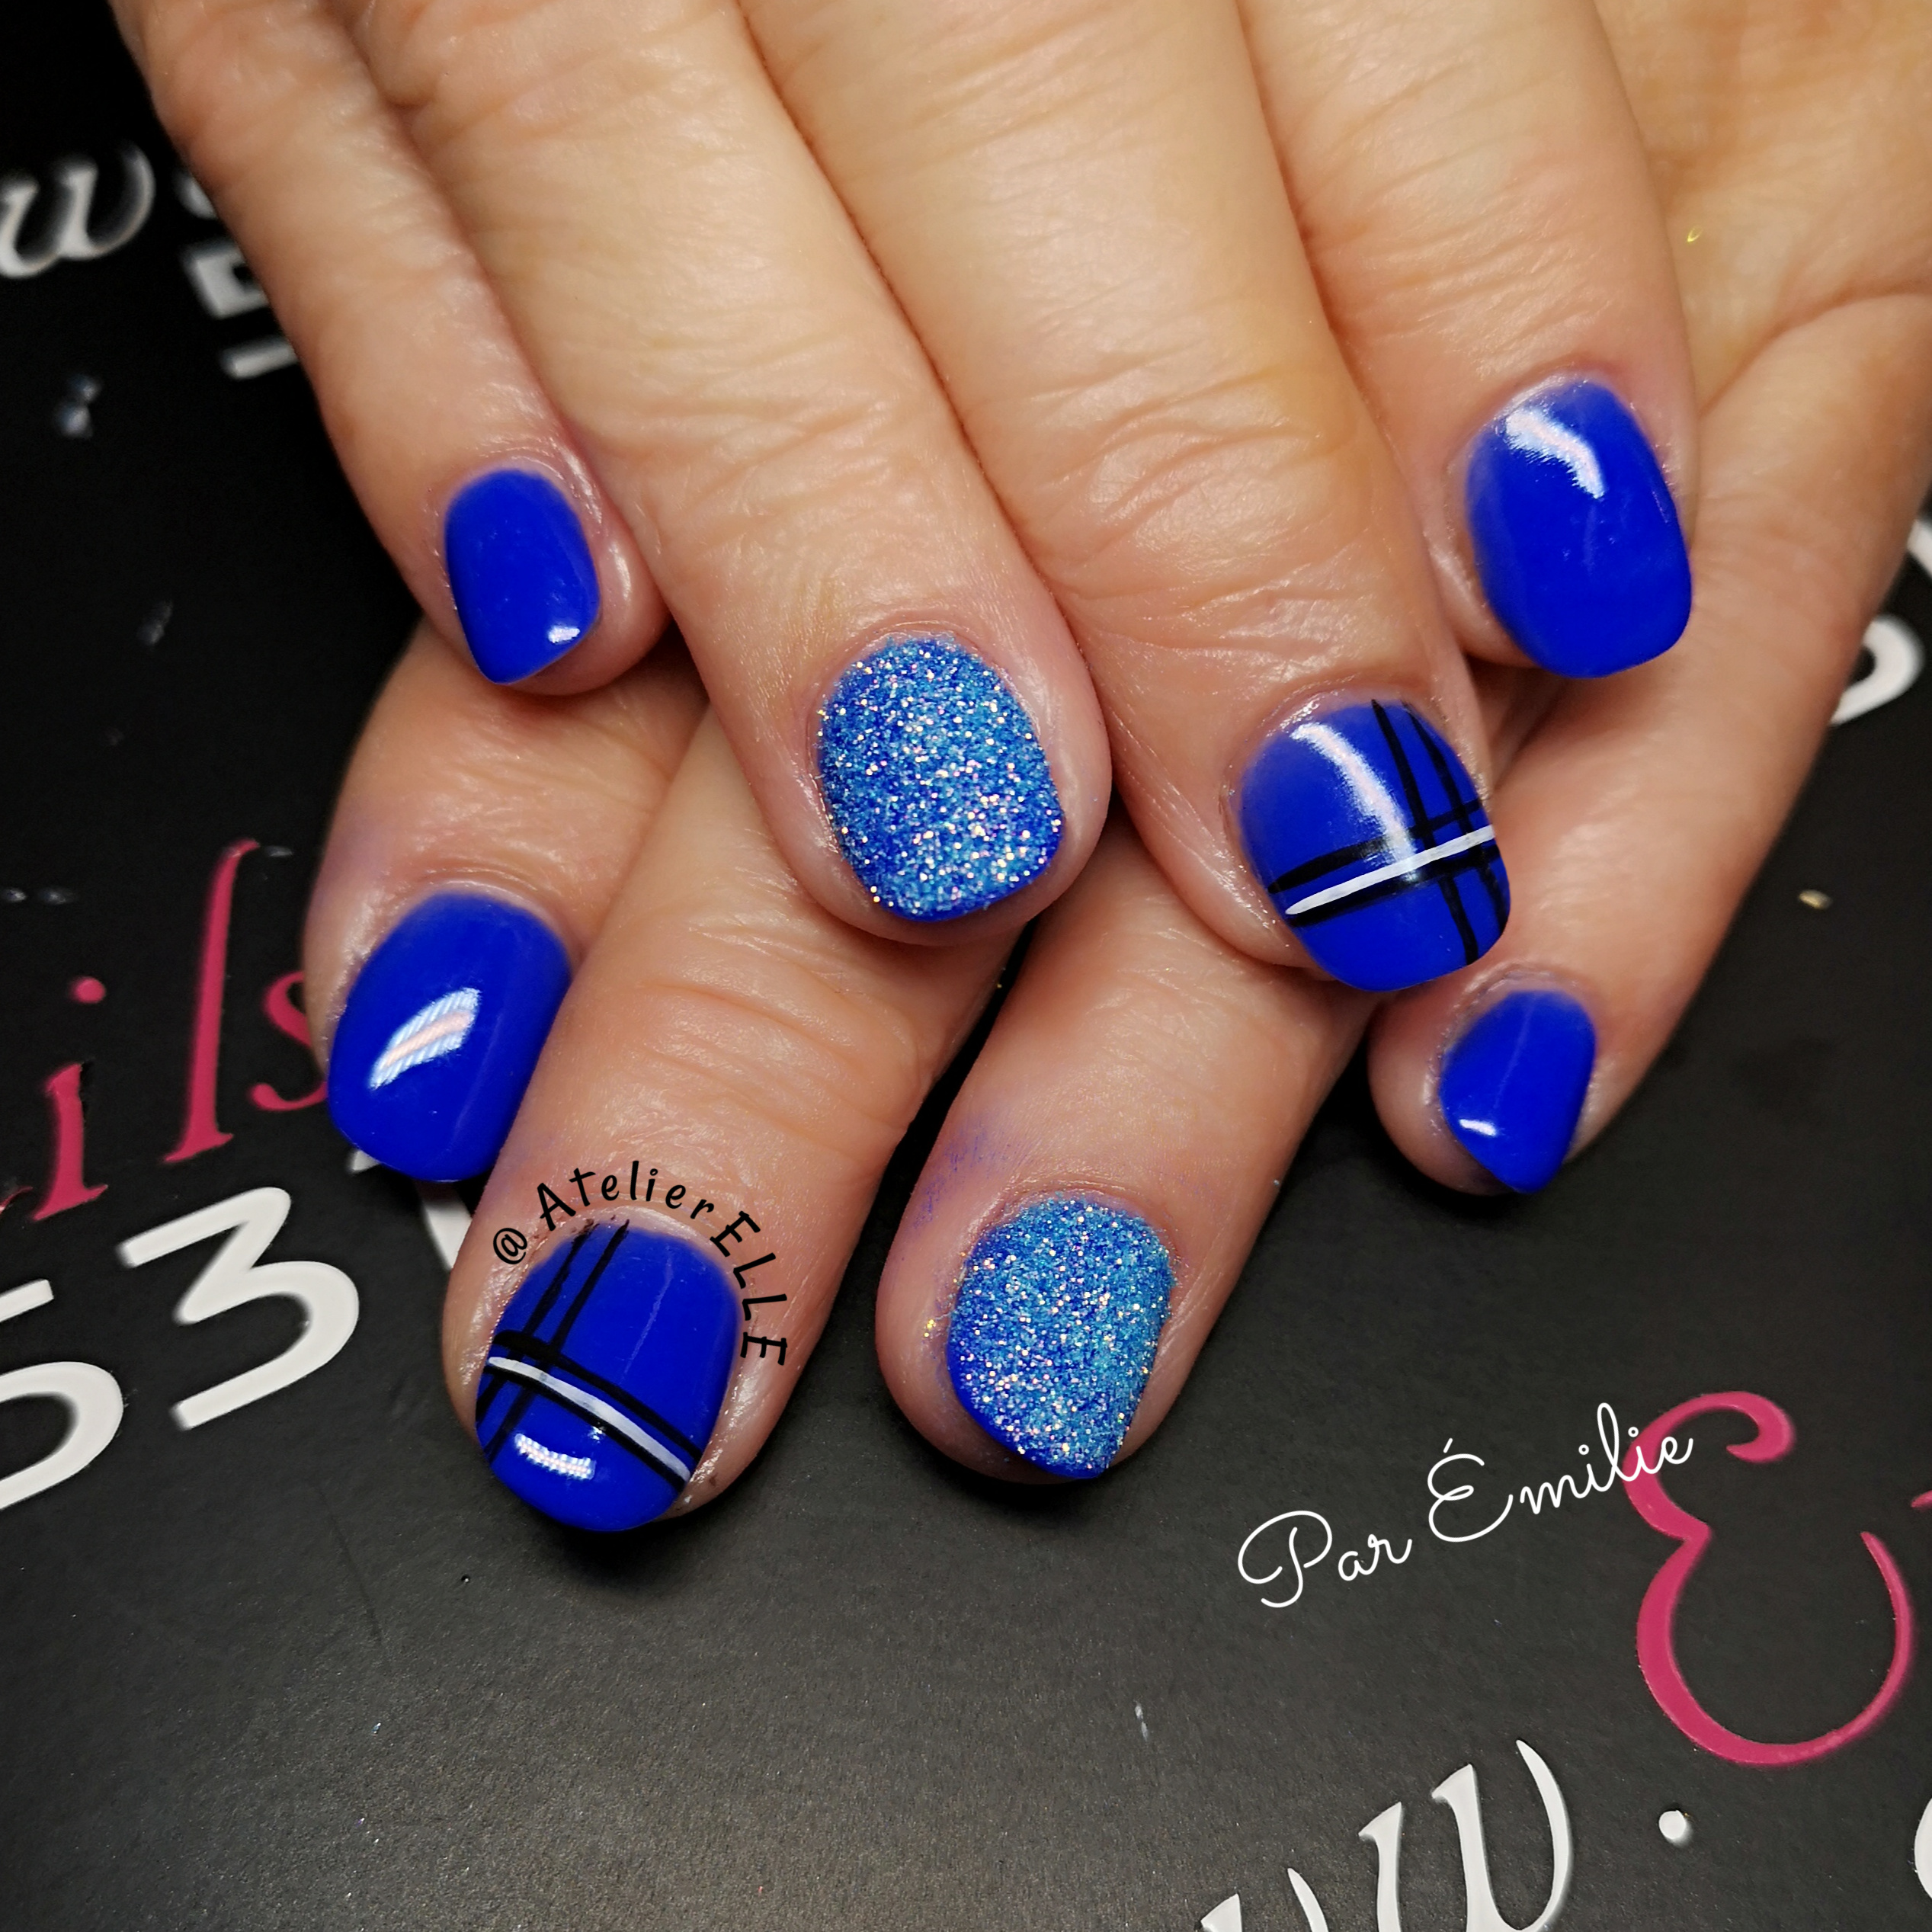 pose d'ongle resine et poudre turquoise